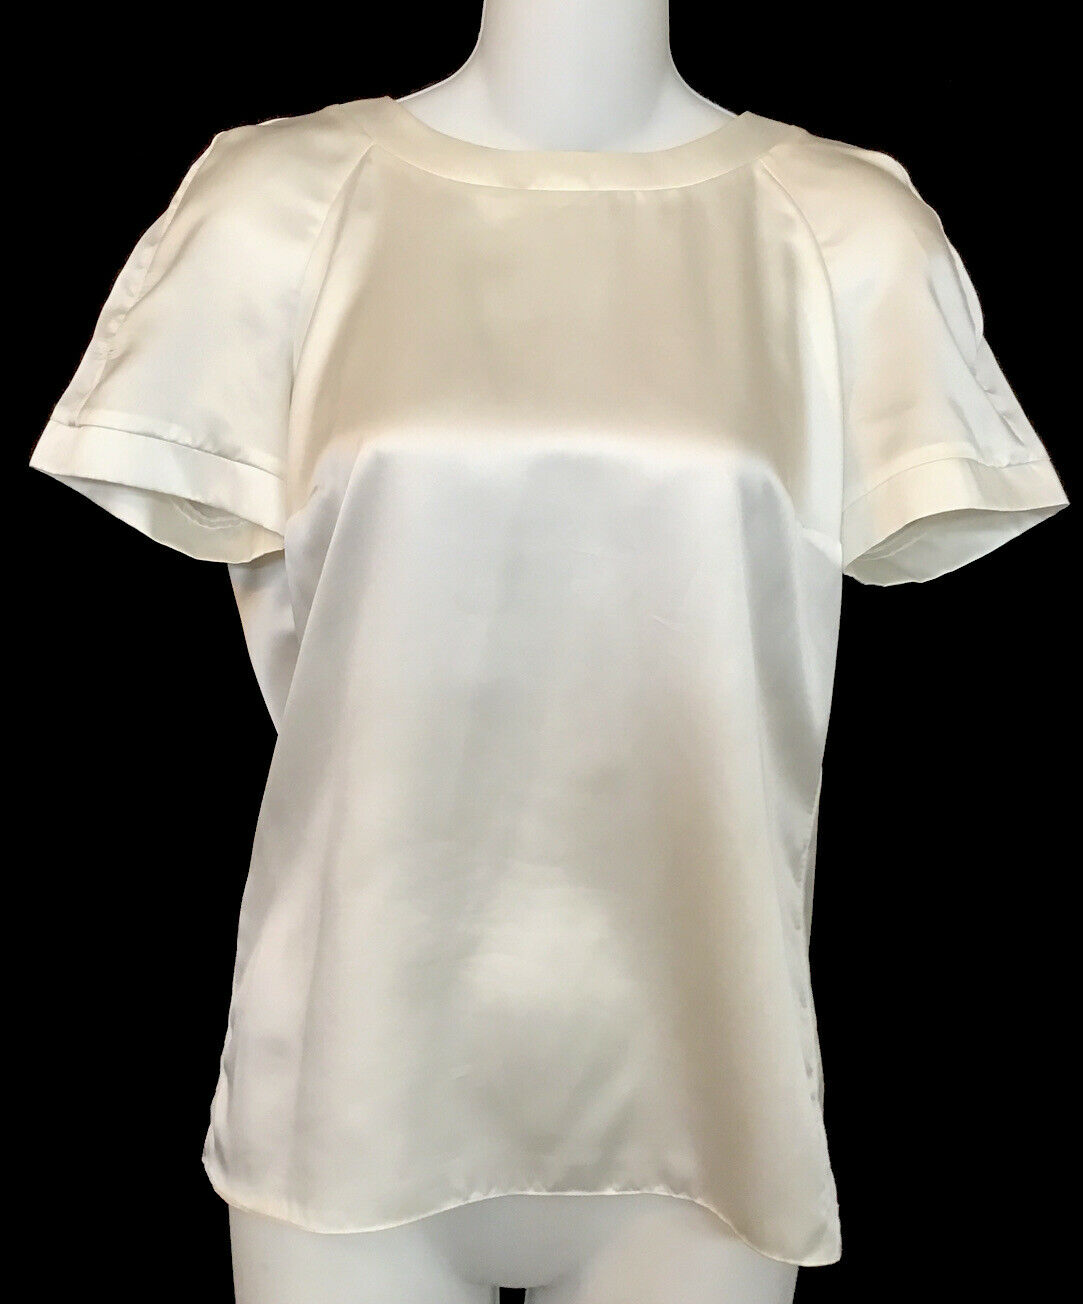 Chanel polyester blouse white short-sleeve preowned for sale on eBay, 2021 (Photo courtesy vegas_fashionista via eBay) Posted for media use